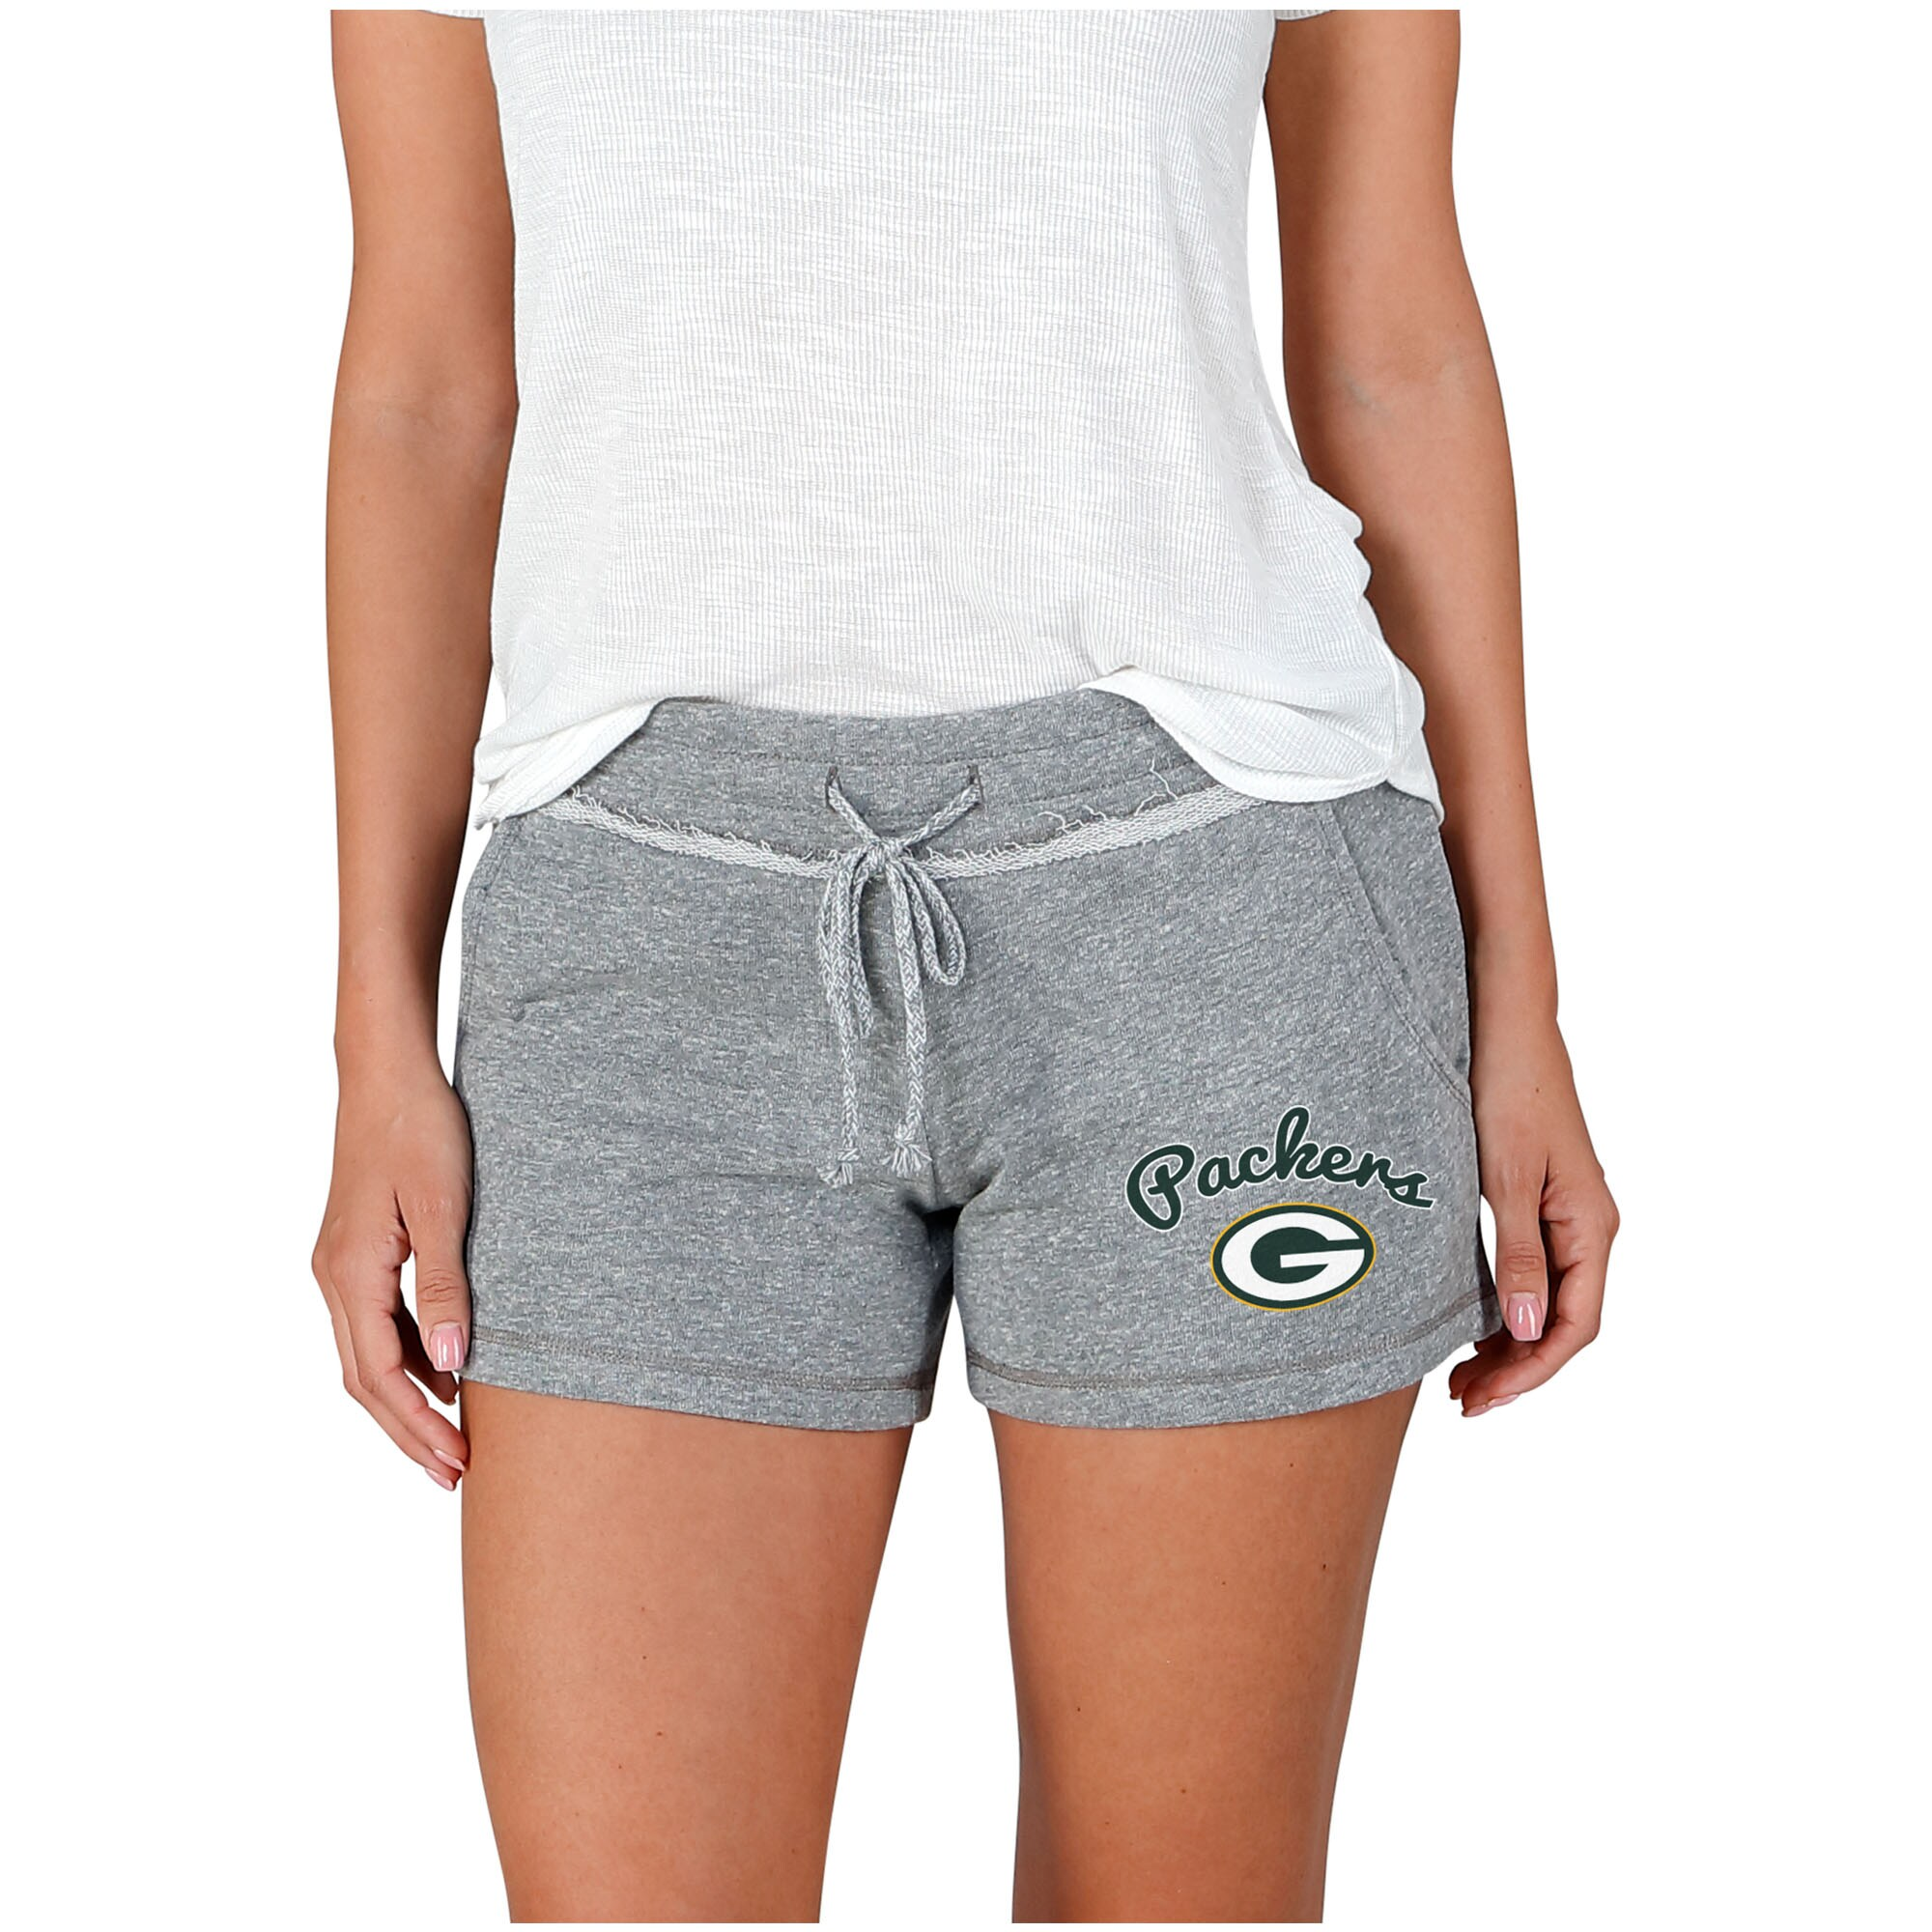 Green Bay Packers Concepts Sport Women's Mainstream Terry Shorts - Gray